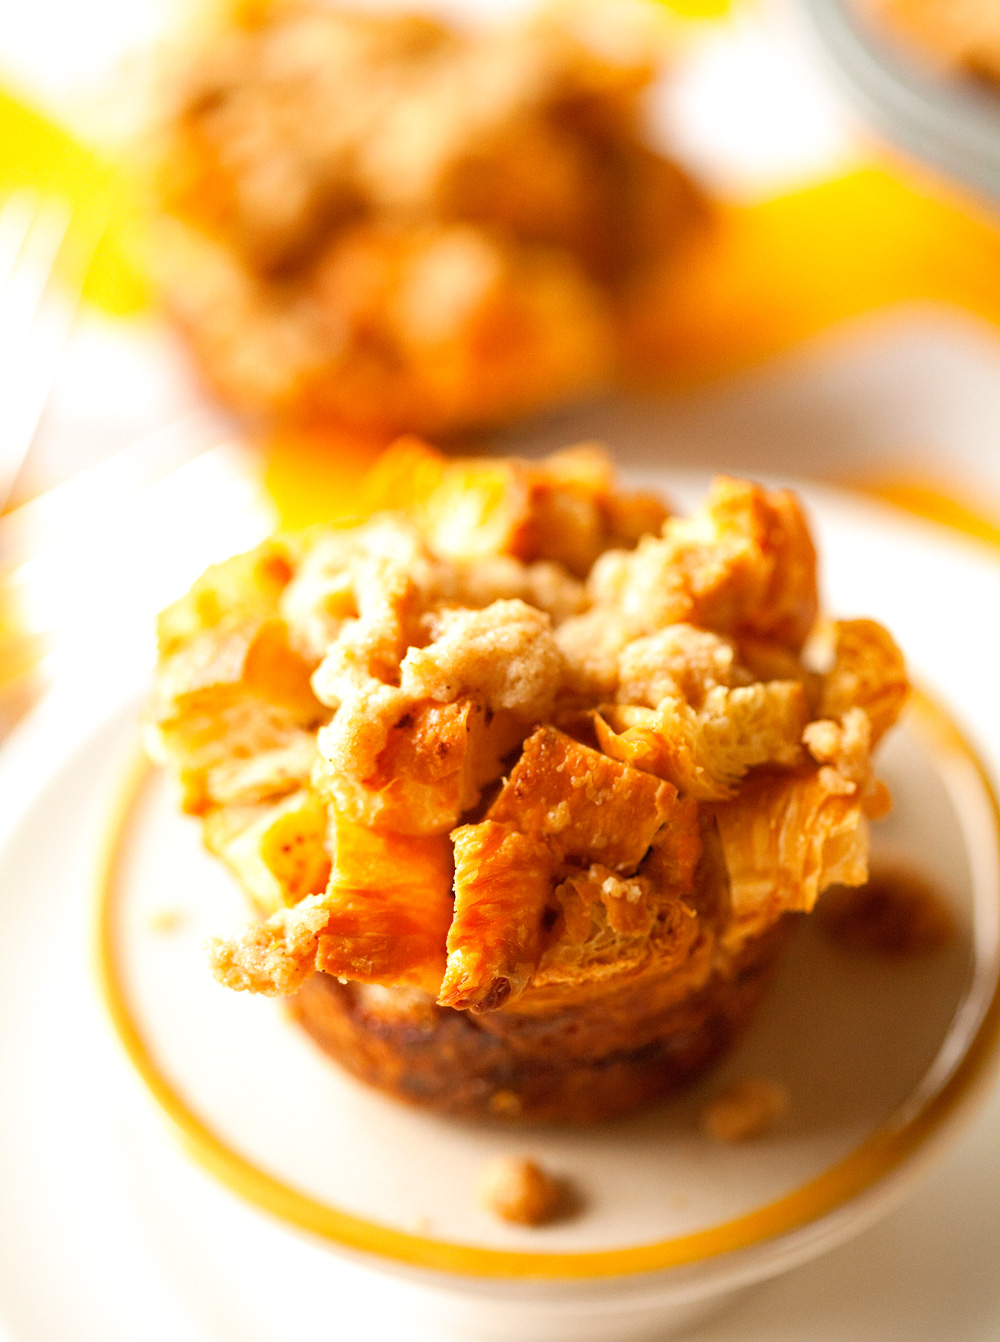 croissant-french-toast-crumble-muffins-with-streusel-topping